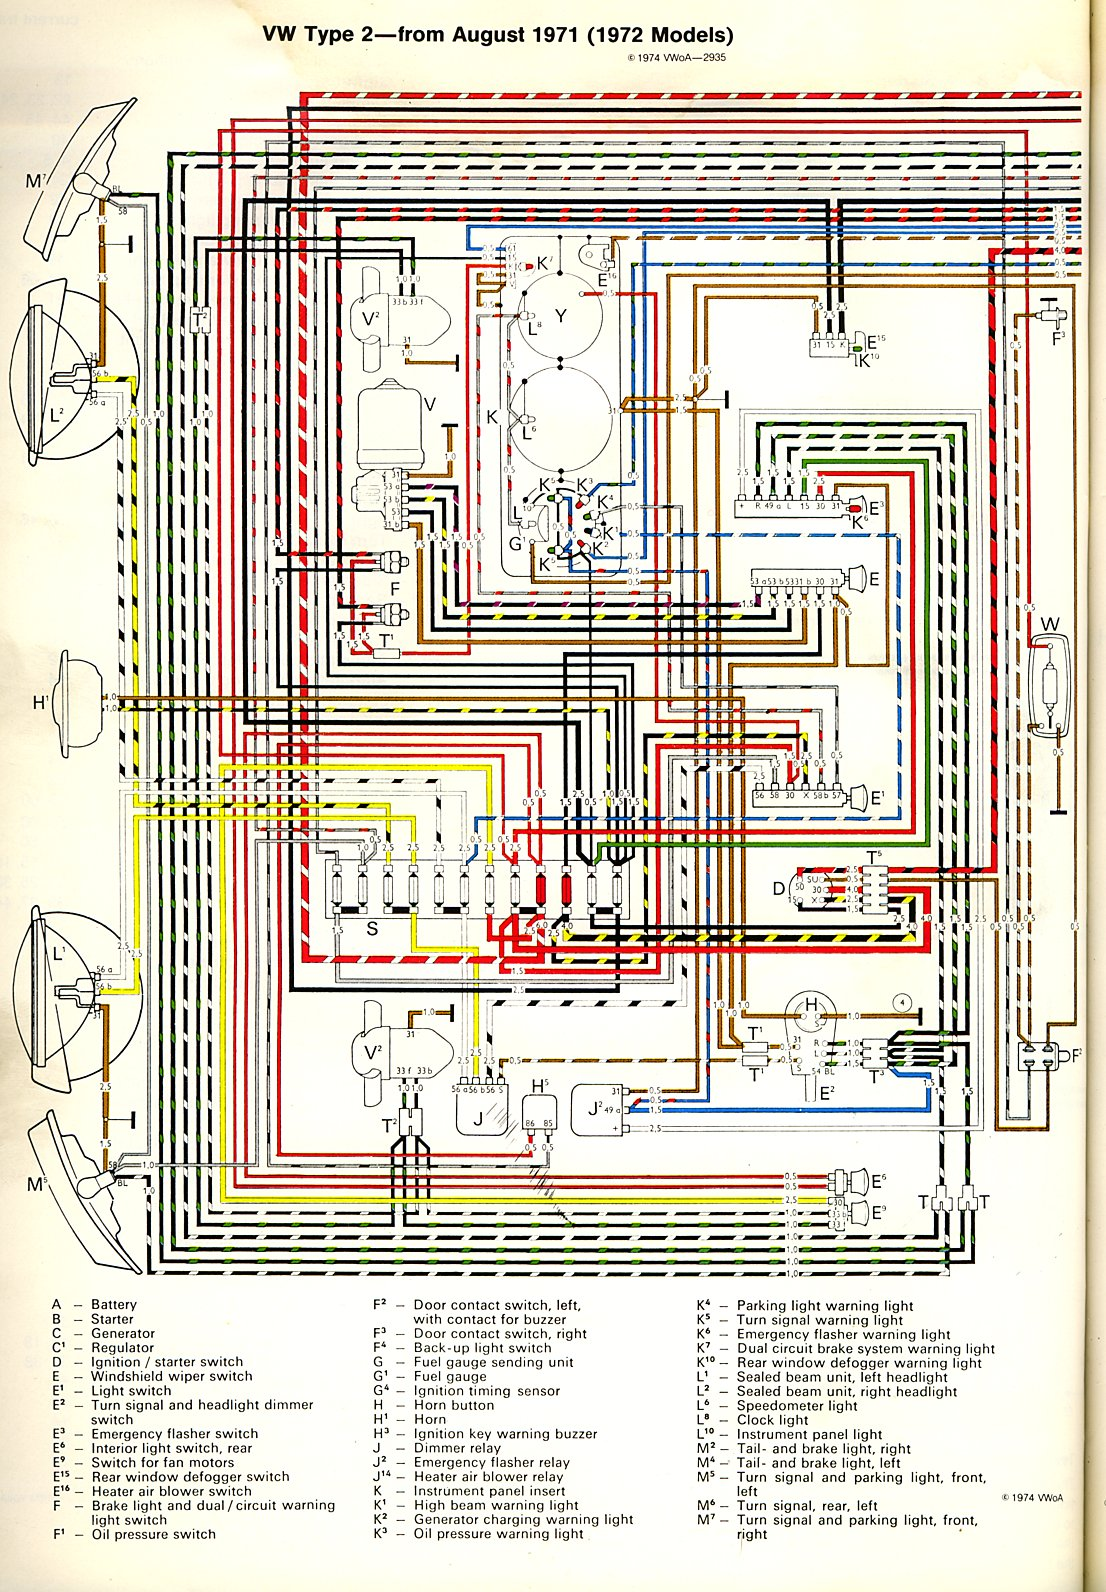 hight resolution of 1972 bus wiring diagram thegoldenbug com 1972 vw karmann ghia wiring diagram 1972 vw beetle alternator wiring diagram